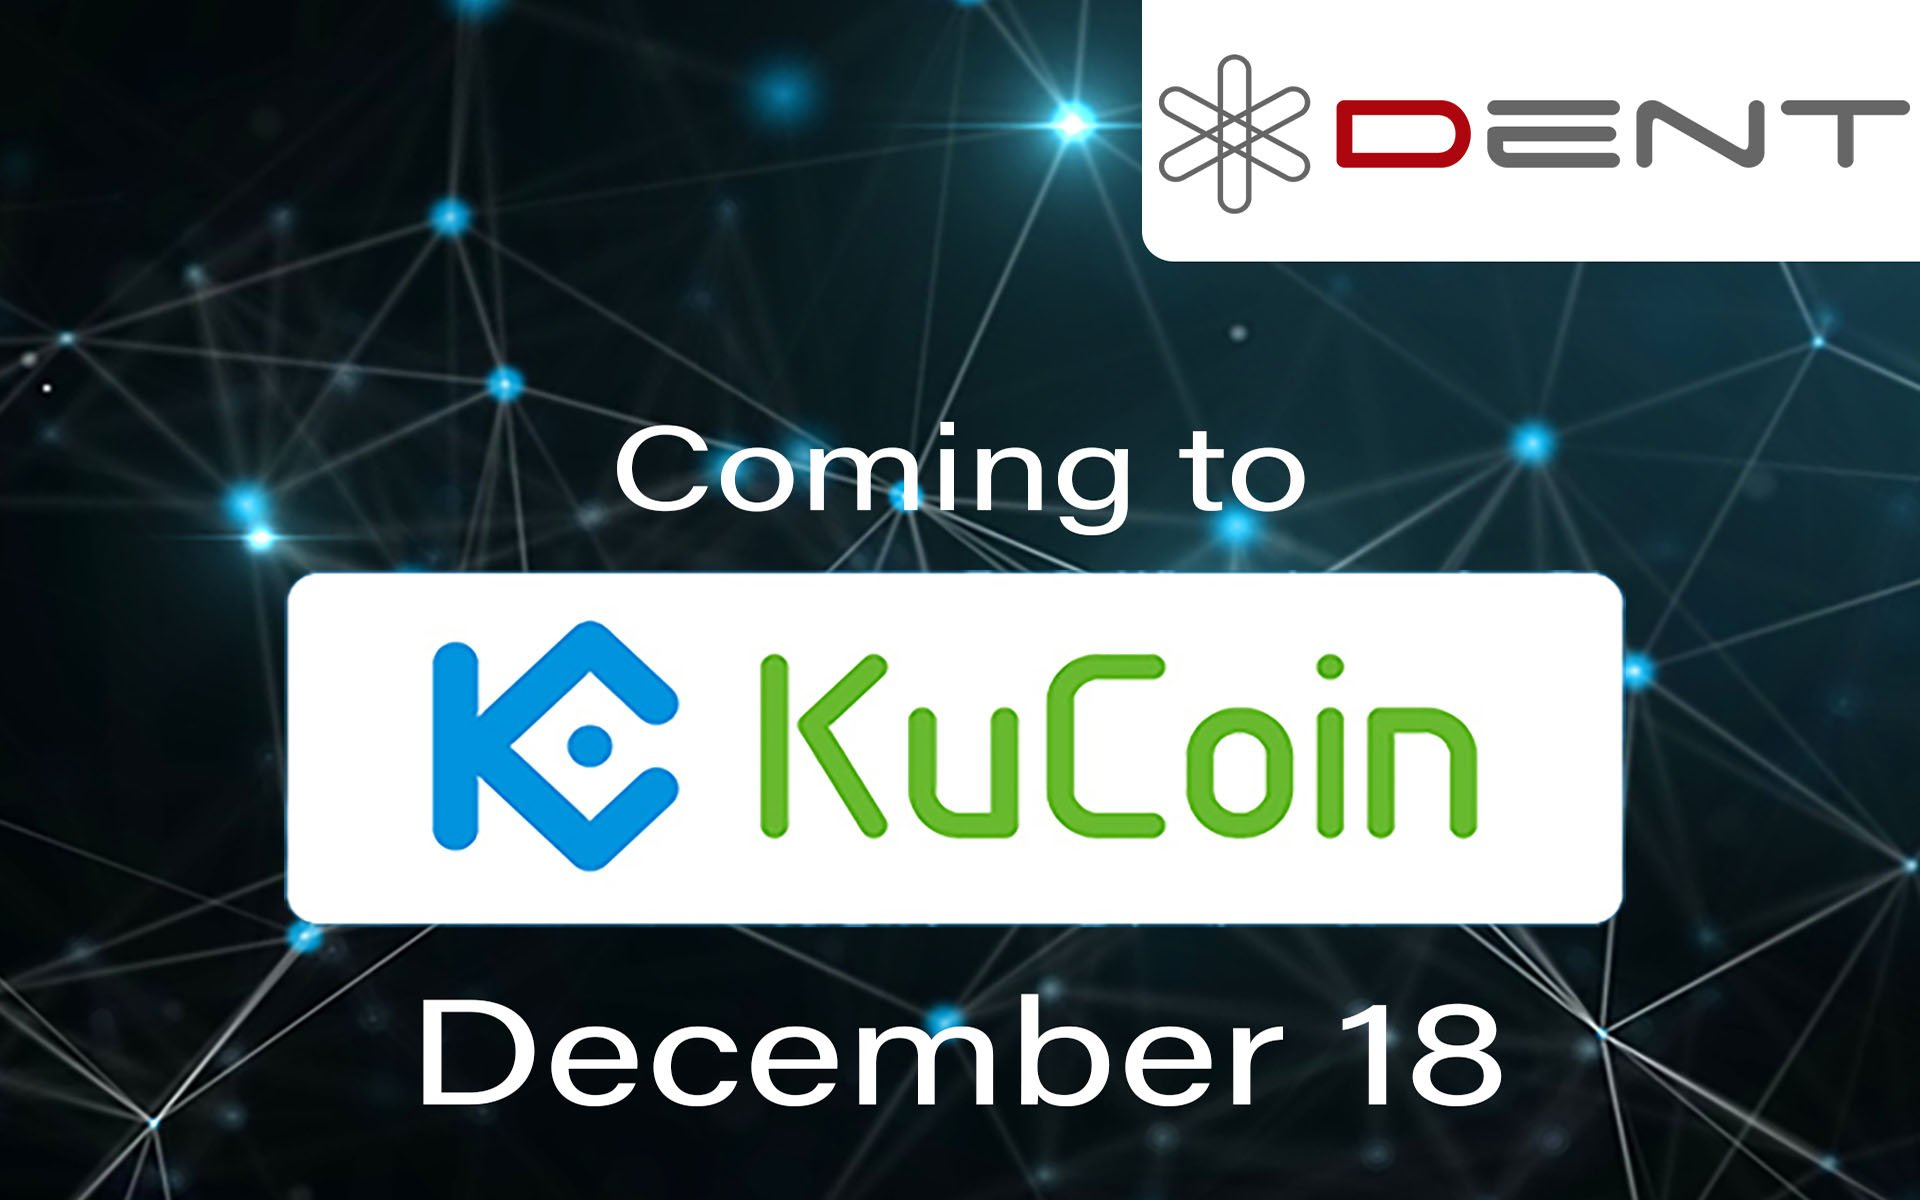 DENT Will Be Listed On KuCoin: Trading Starts On December 18 With 10 Million DENT As Prize For Top Traders